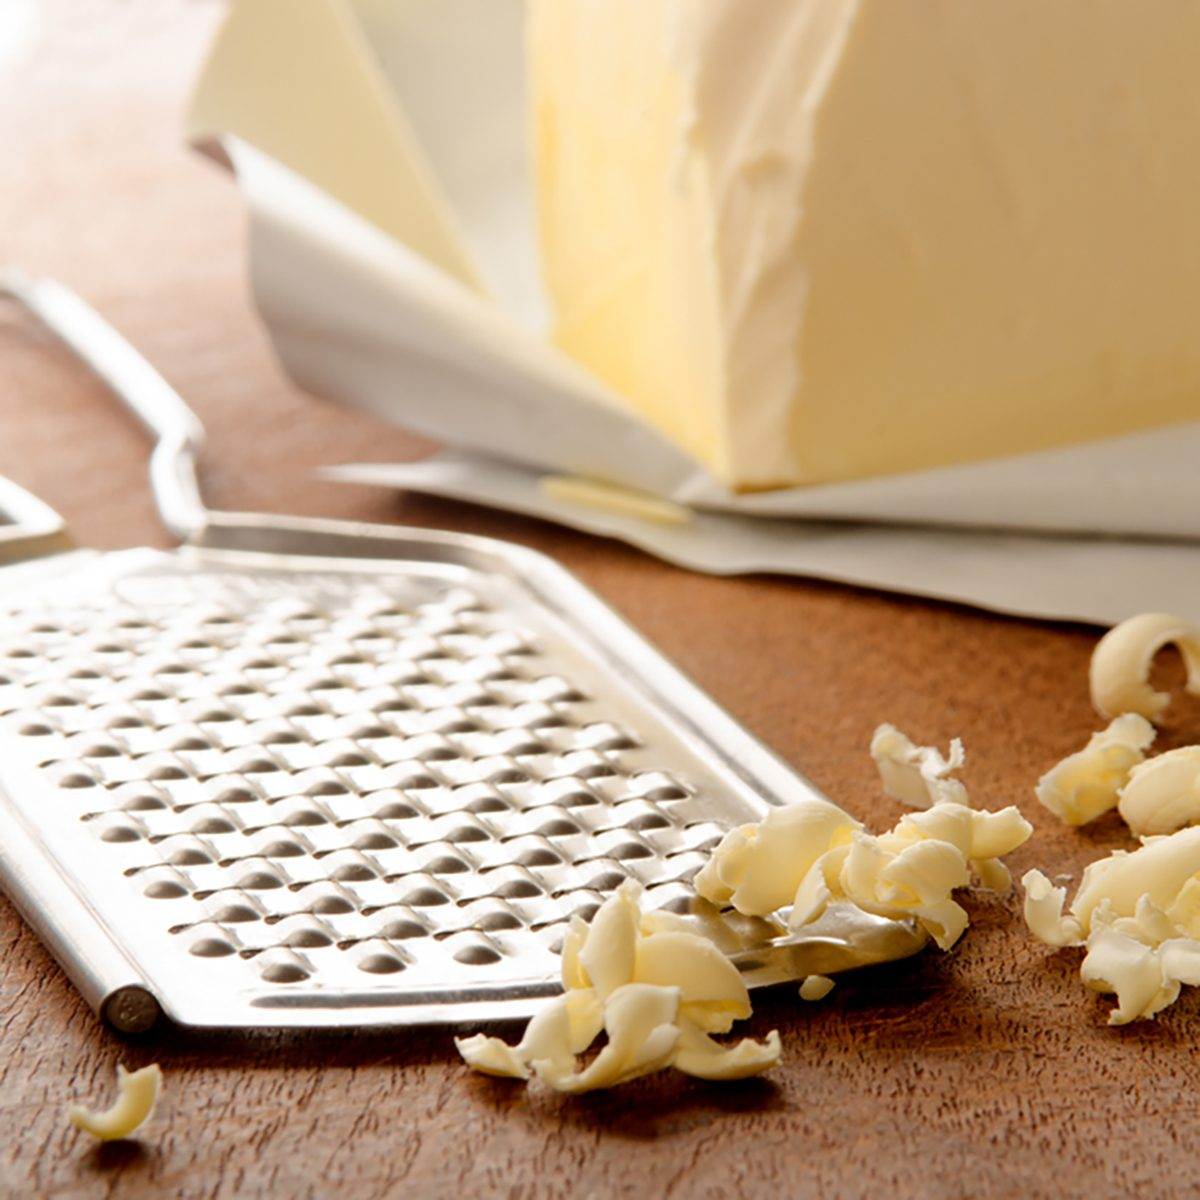 grated butter and grater on wooden board